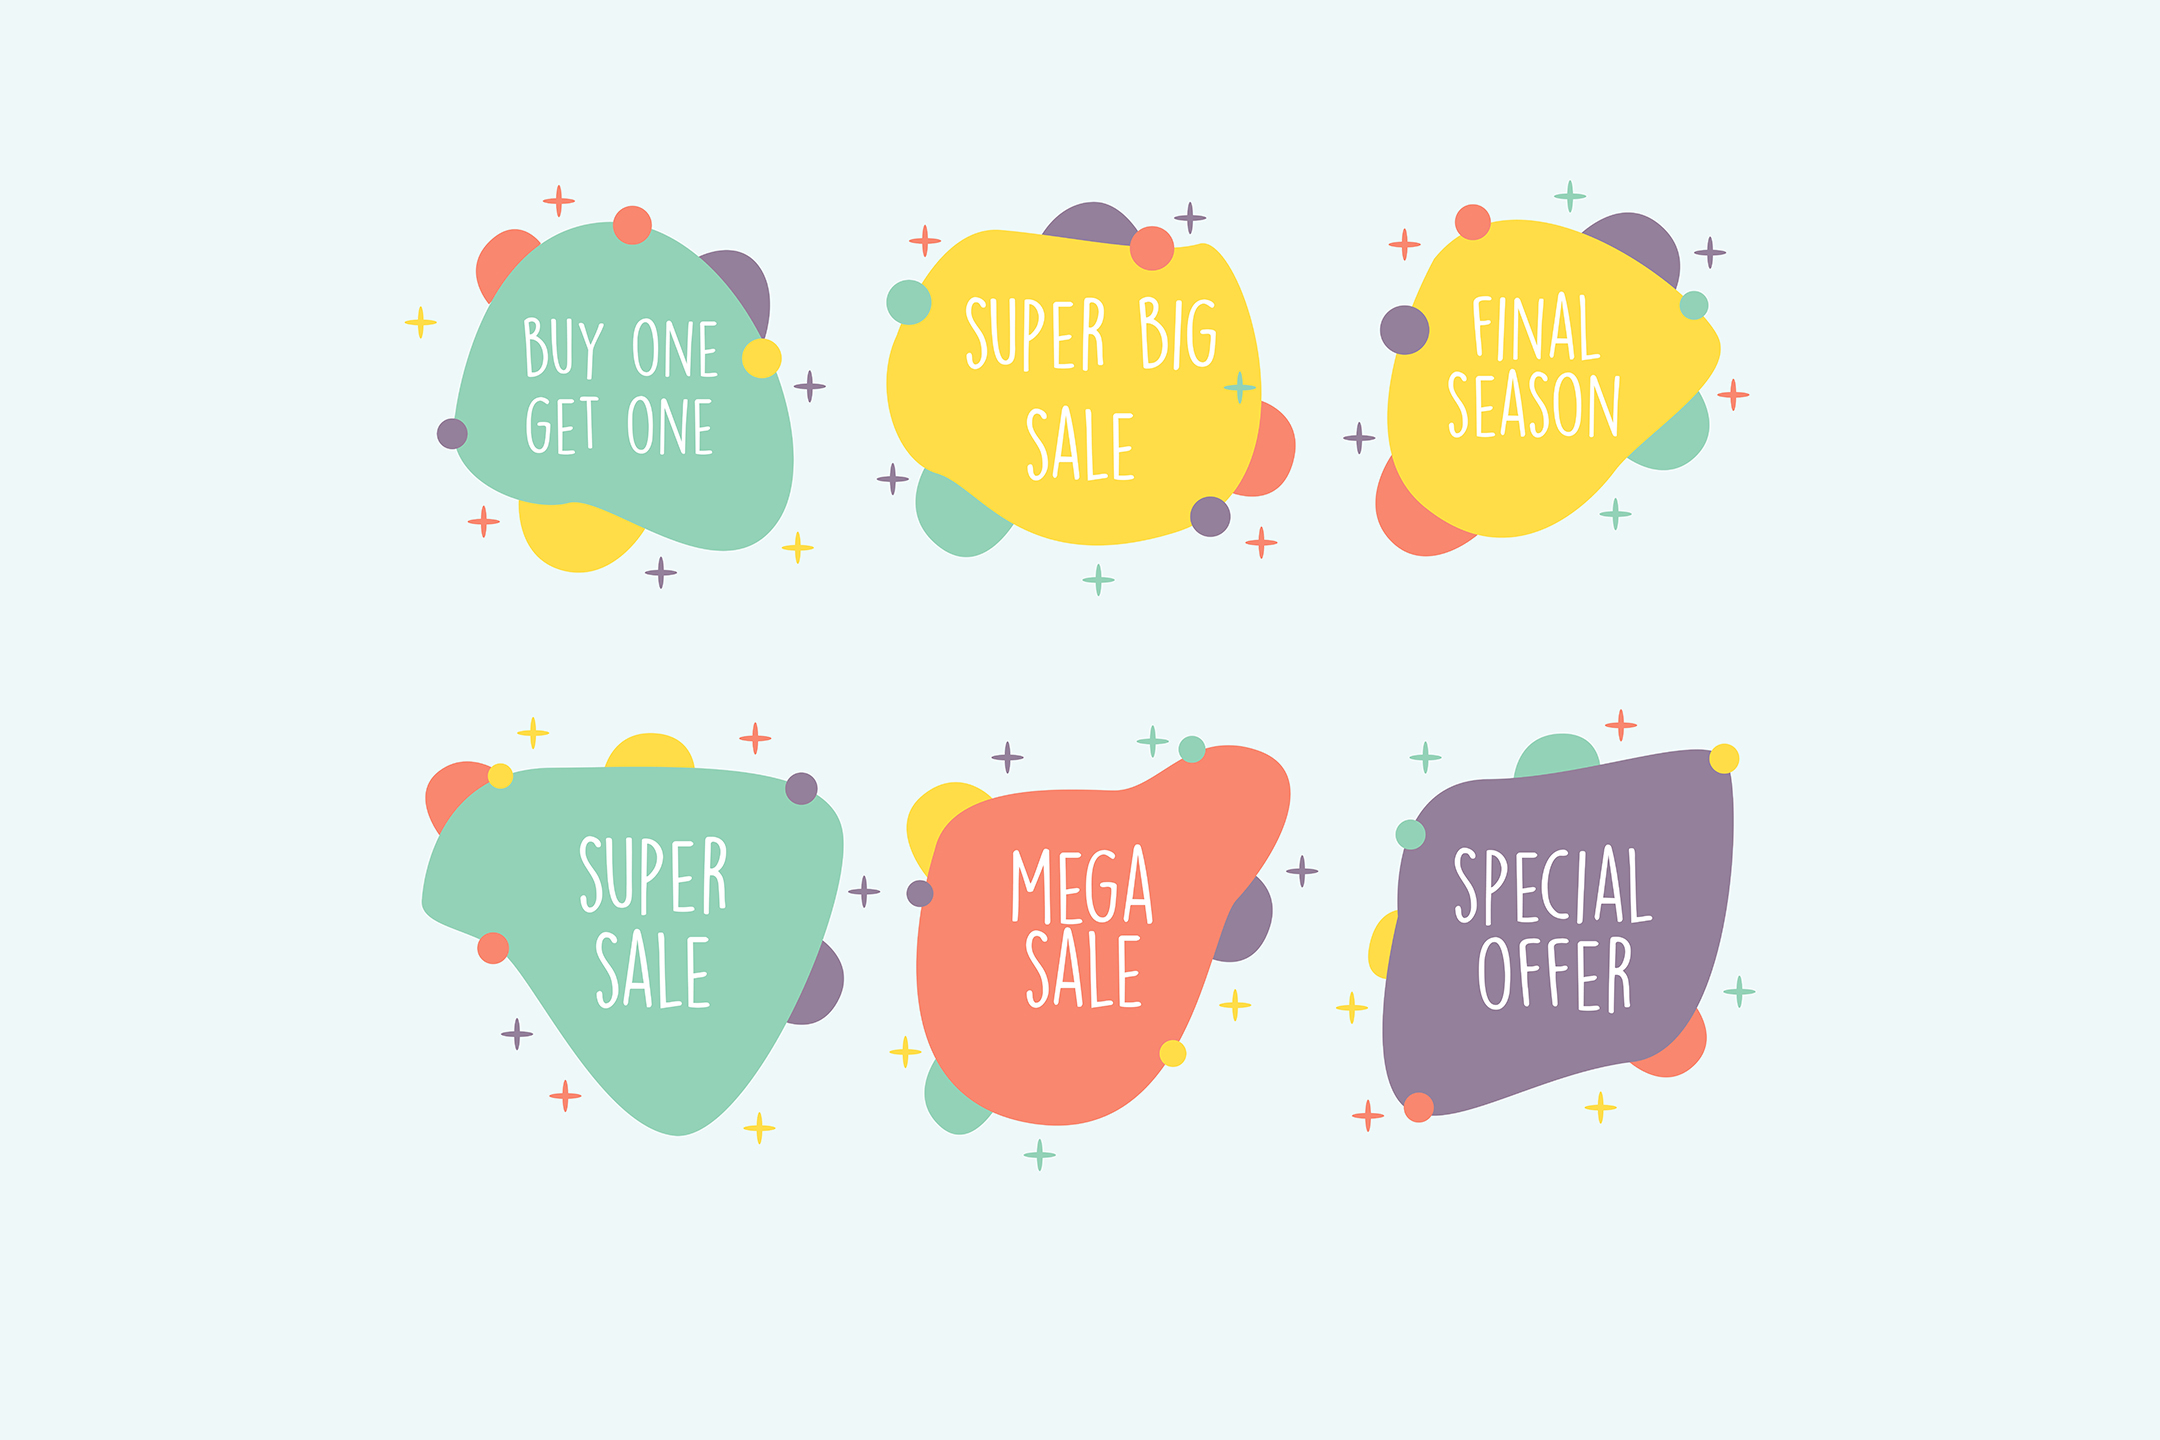 Download Free Sales Badges Colorful Illustration Graphic By Aprlmp276 for Cricut Explore, Silhouette and other cutting machines.